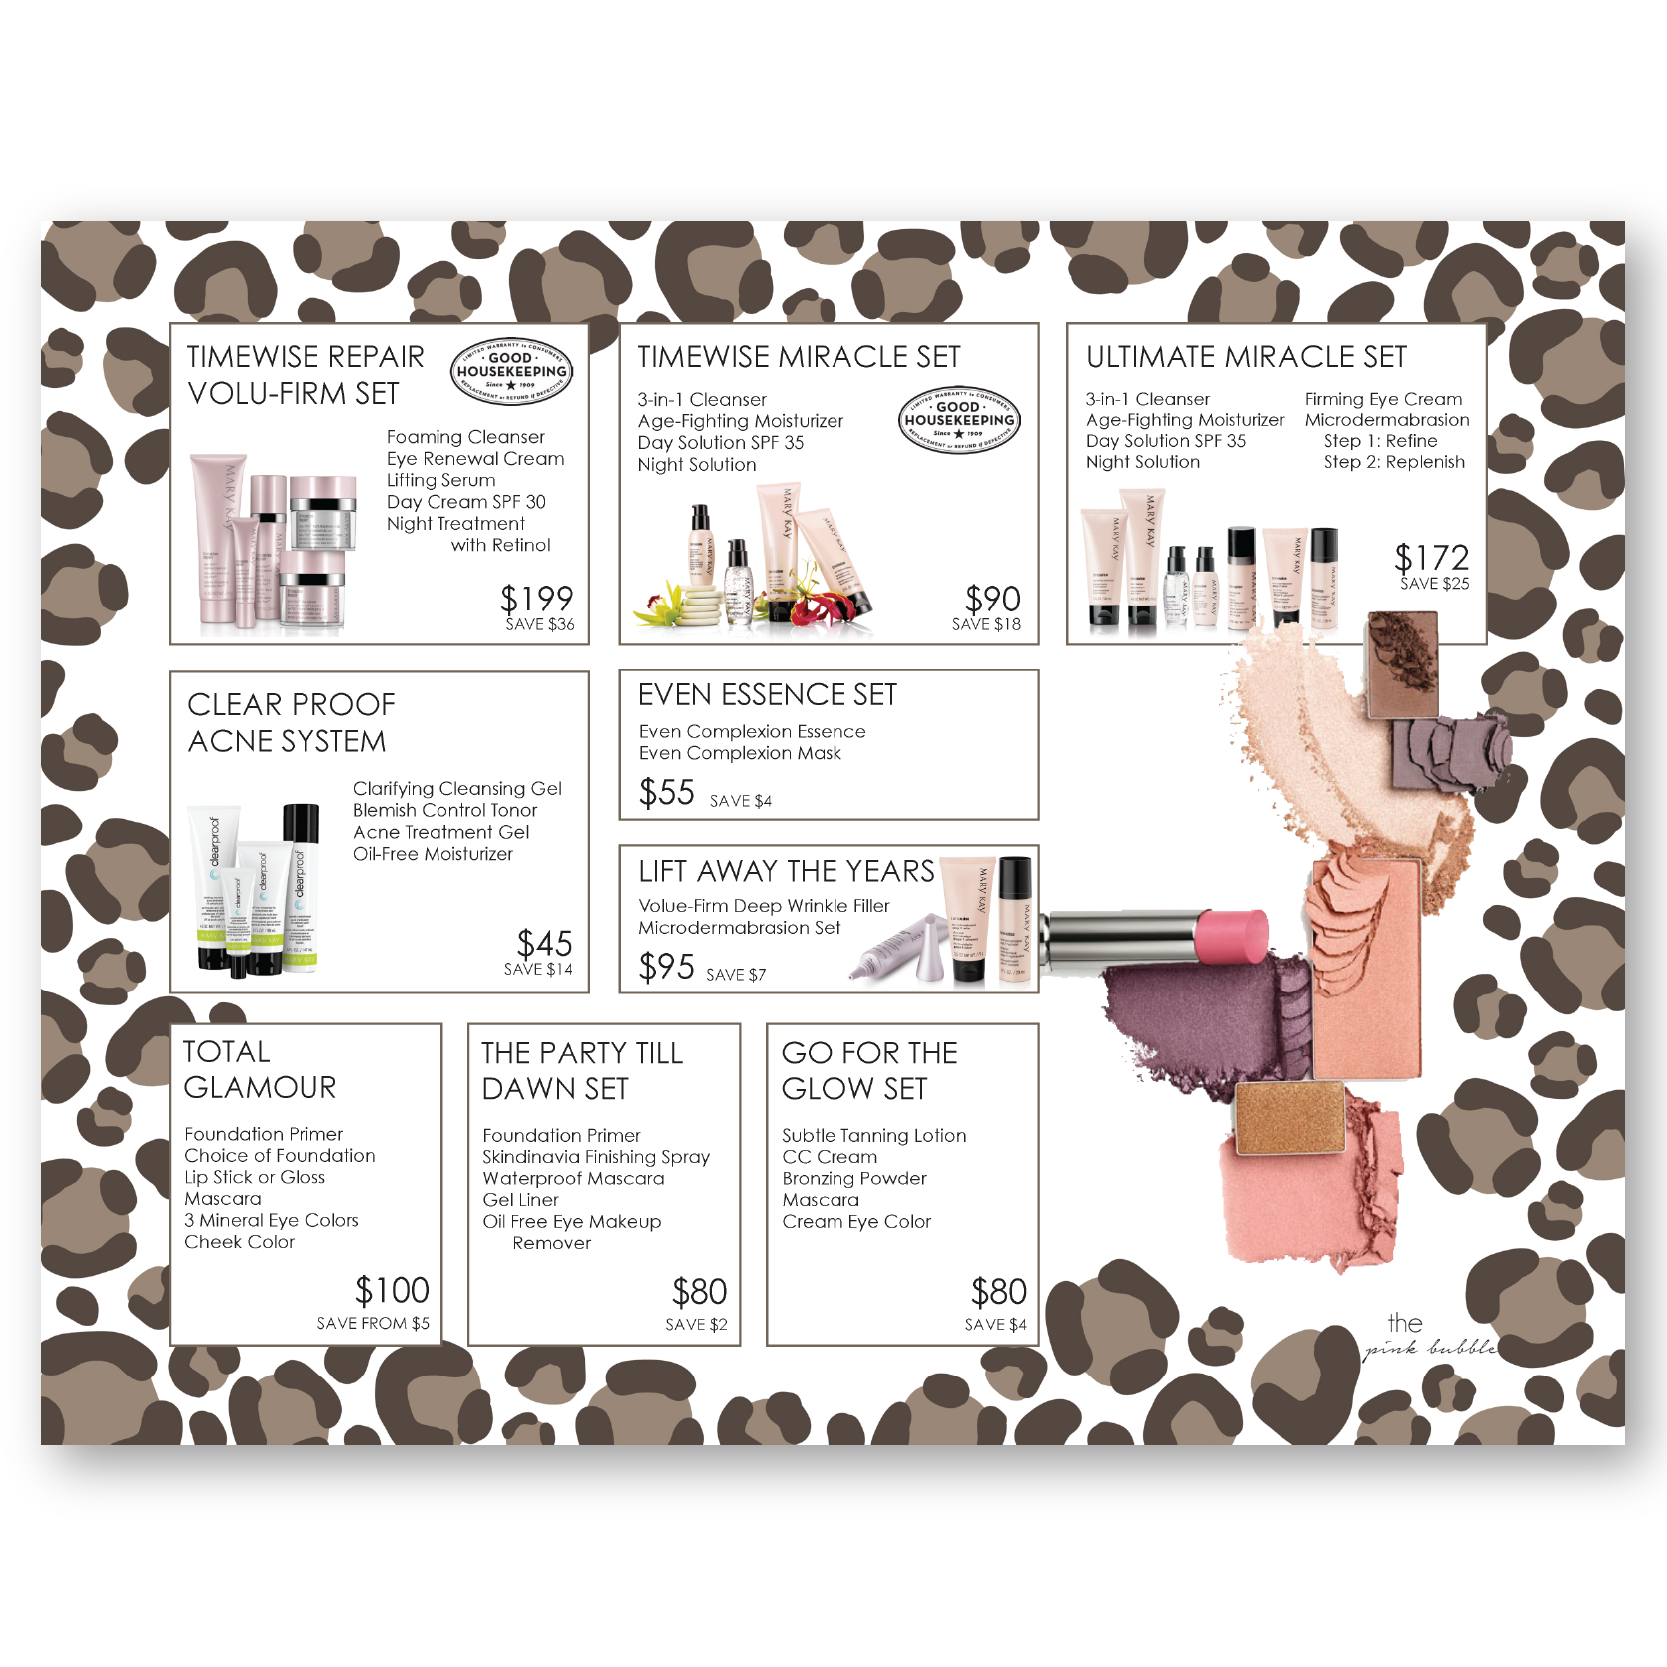 Mary Kay Skin Care Class Placemat Closing Sheet Set Sheet Customize Four Sets Just For You Find It On Www Th Mary Kay Organization Mary Kay Mary Kay Party